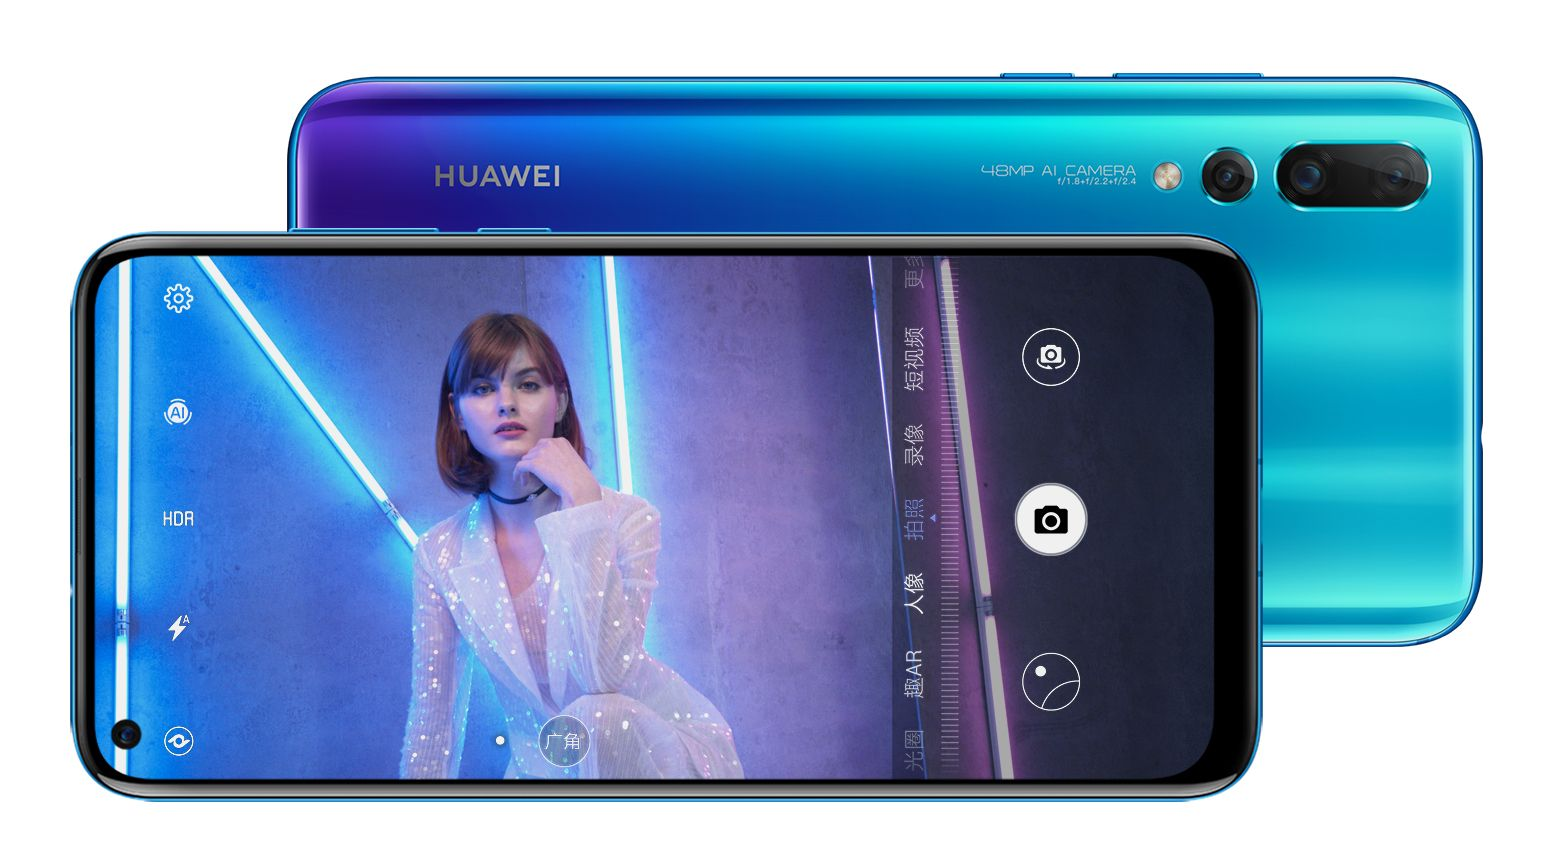 Huawei Nova 4 Revealed To Have A Pinhole Camera On Front 48mp Camera On Back Best Smartphone Huawei Megapixel Camera